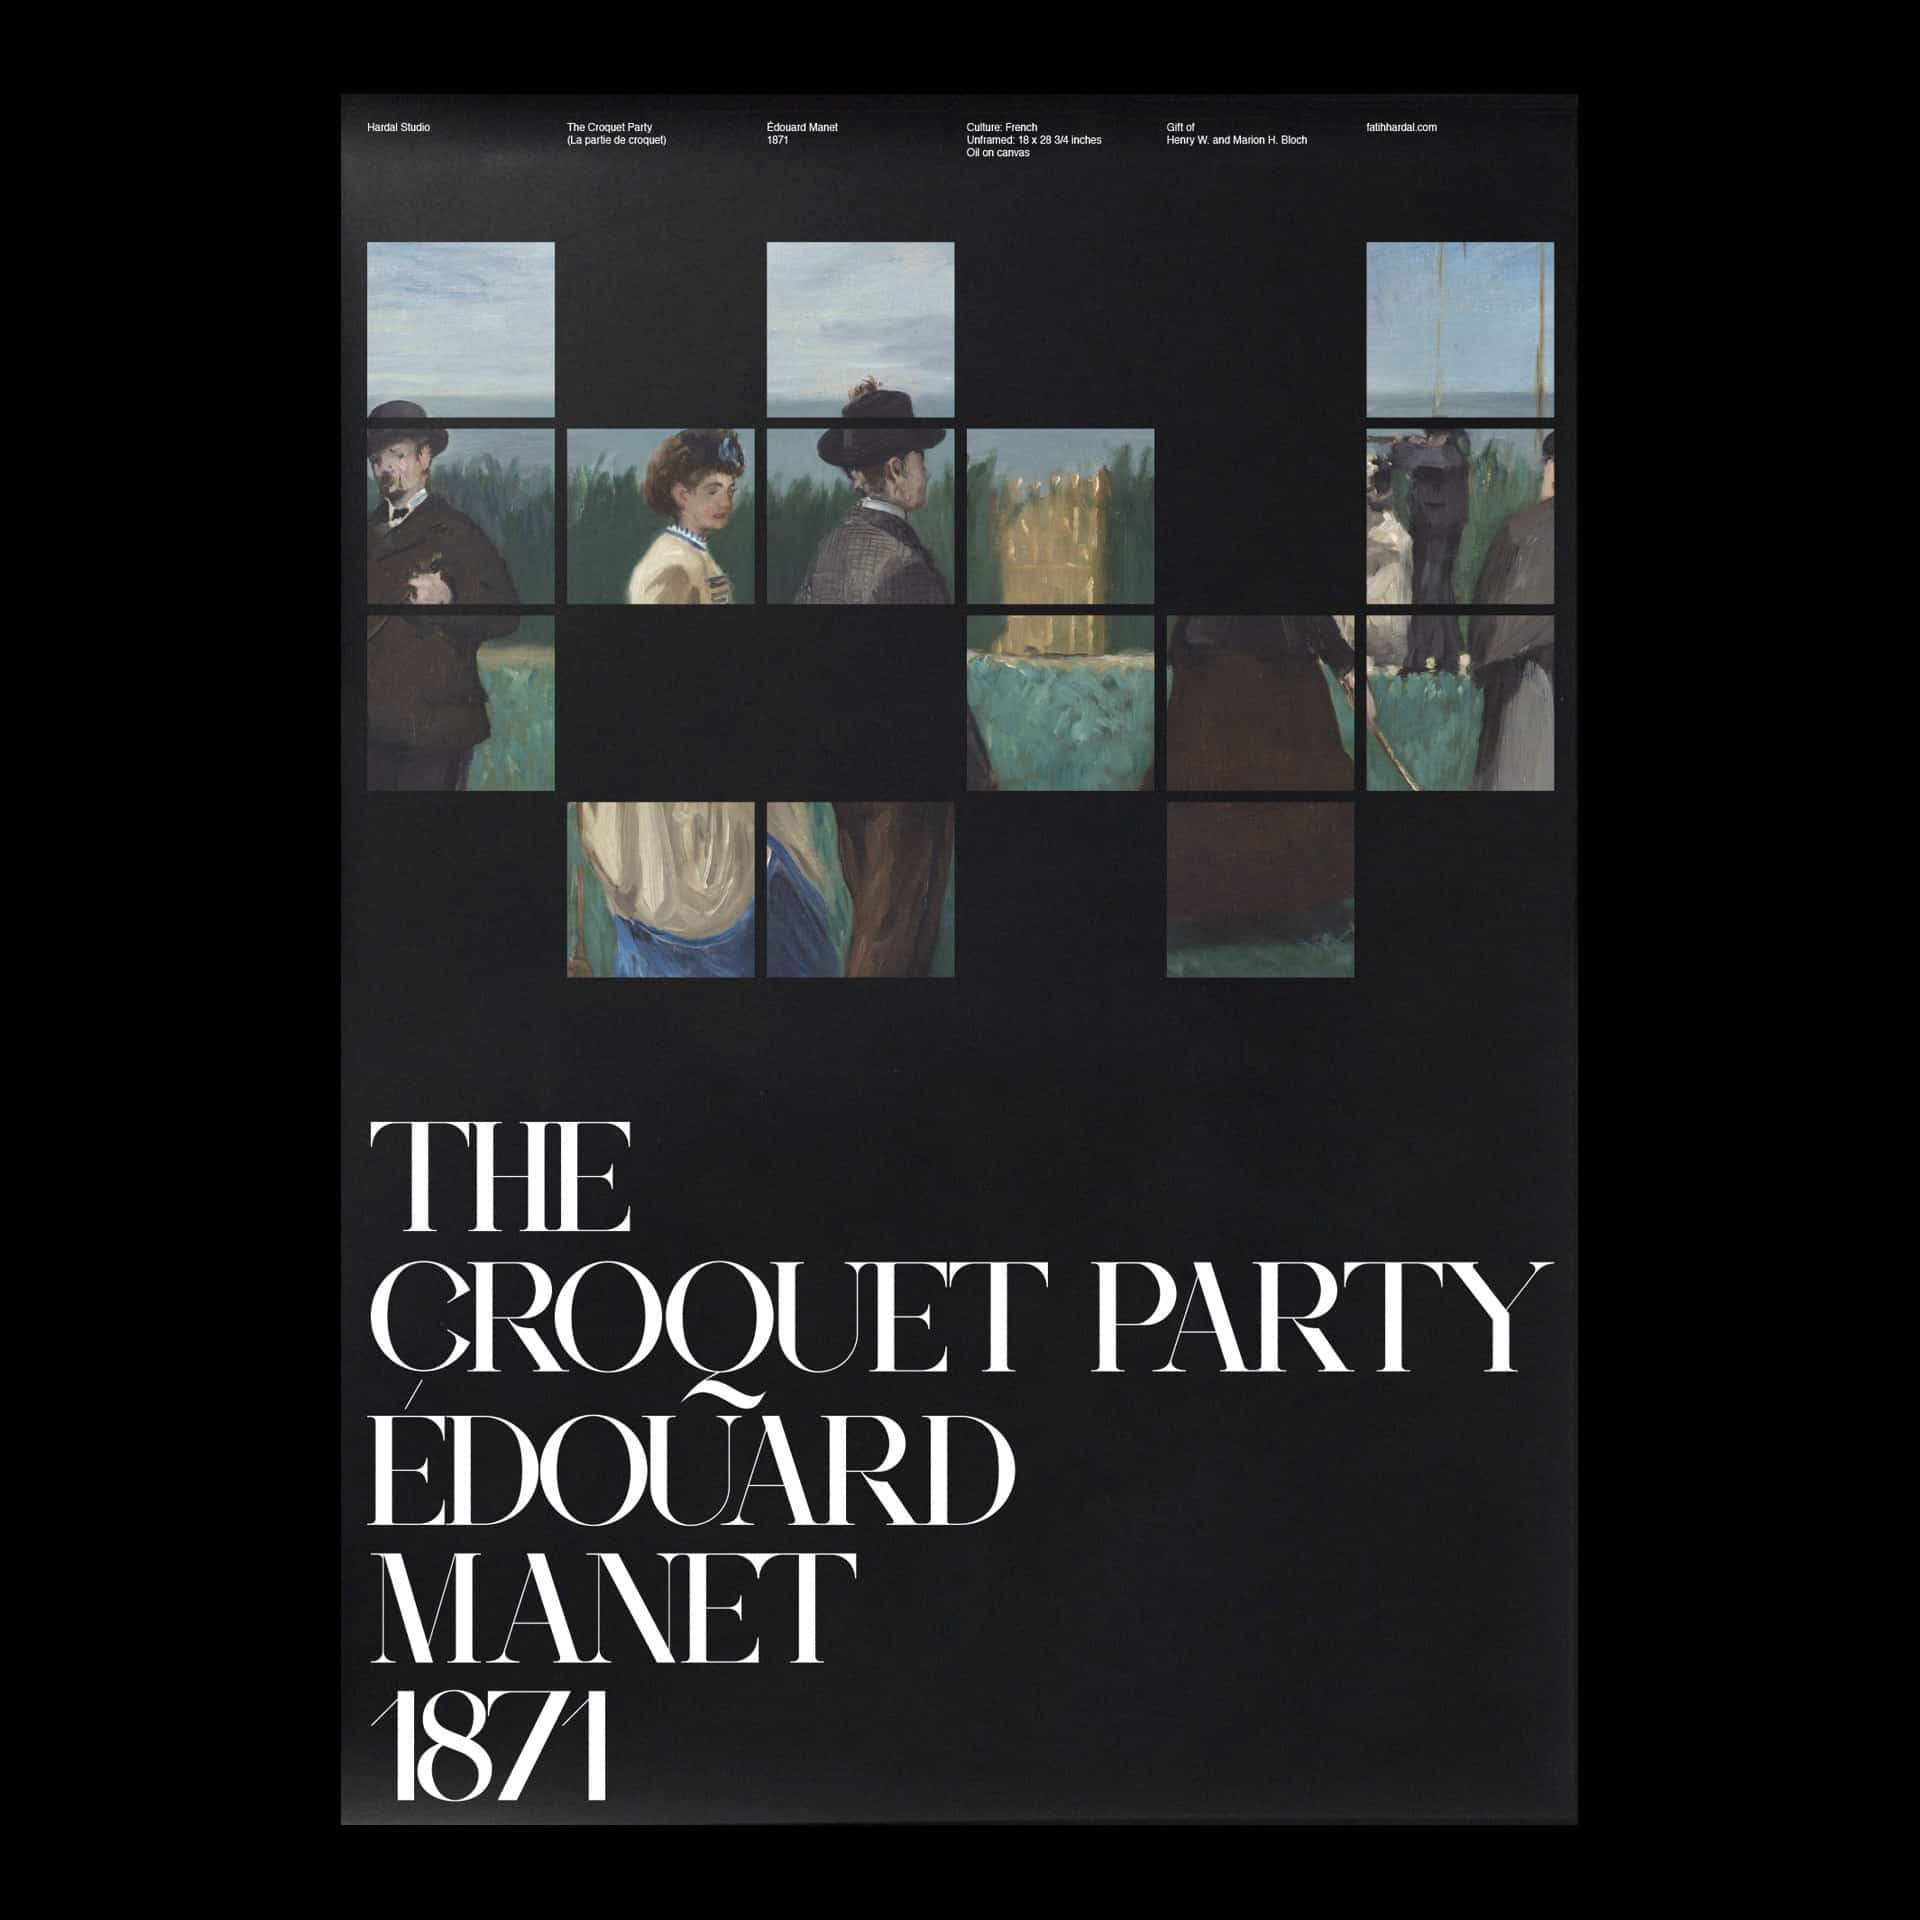 The Croquet Party Edouard Manet 1871 Minimal Poster Design